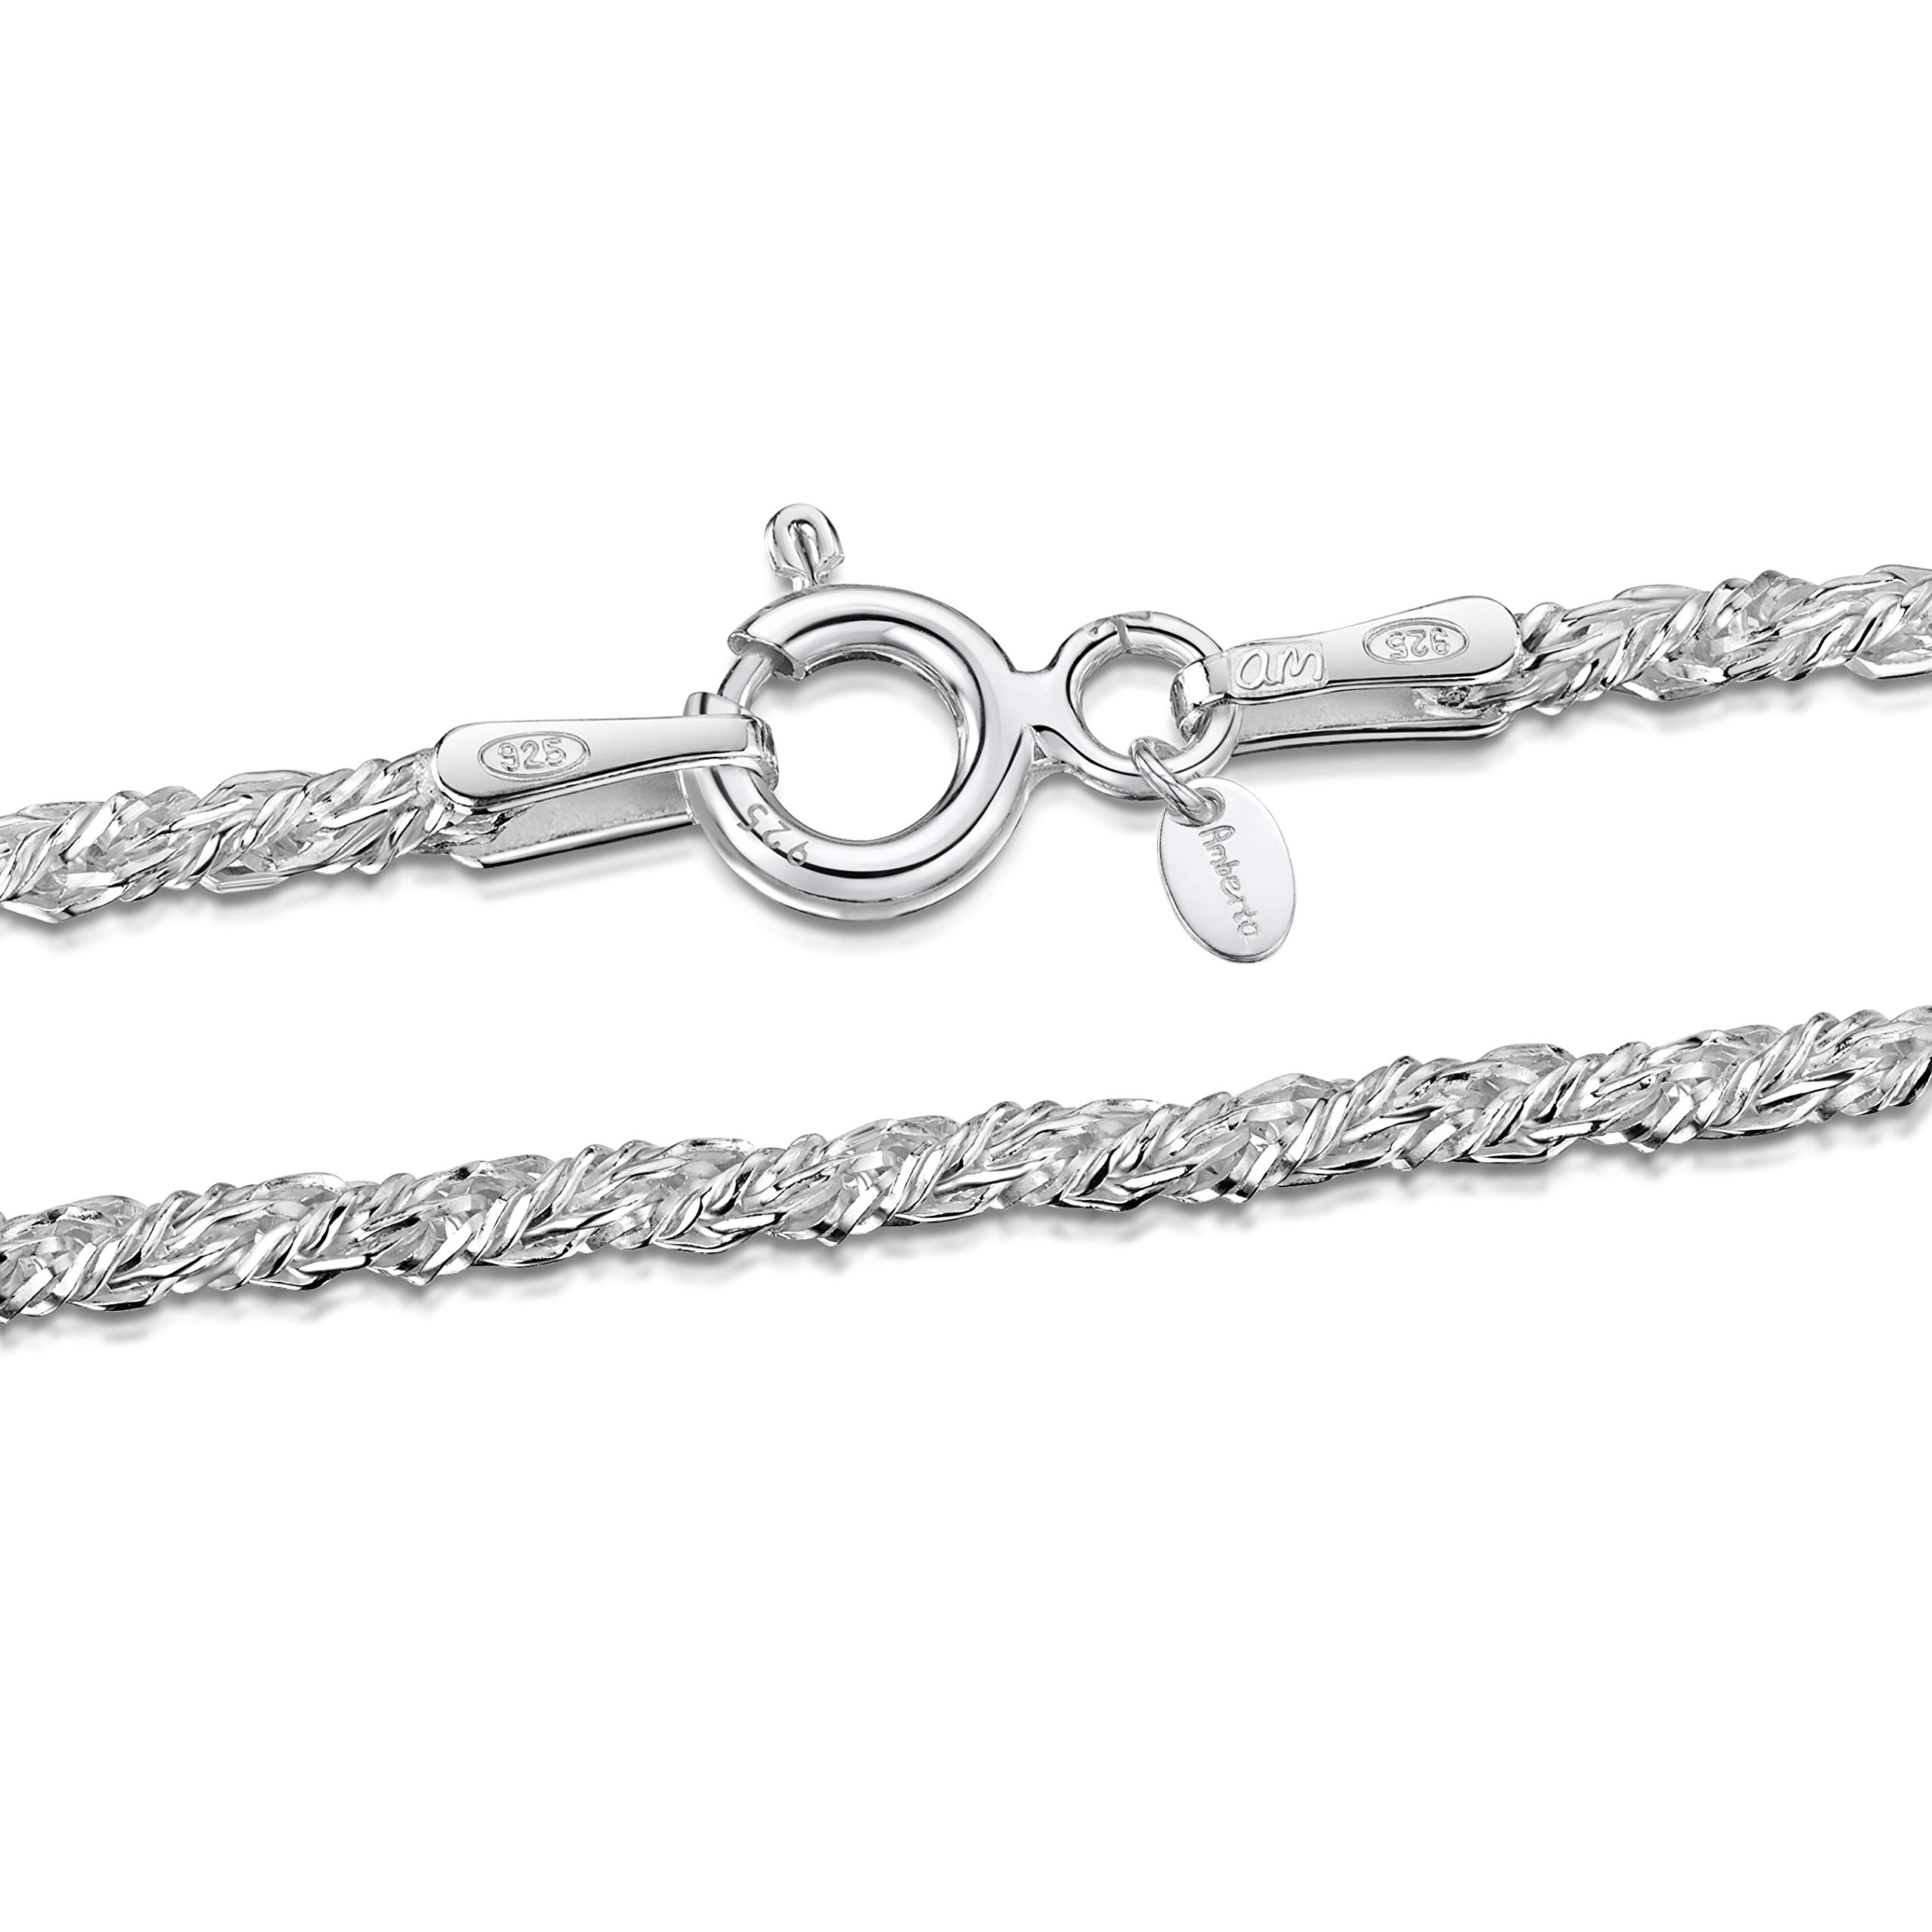 Amberta 925 Sterling Silver 3.5 mm Ball Bead and Bar Chain Bracelet Size 7 7.5 8 in